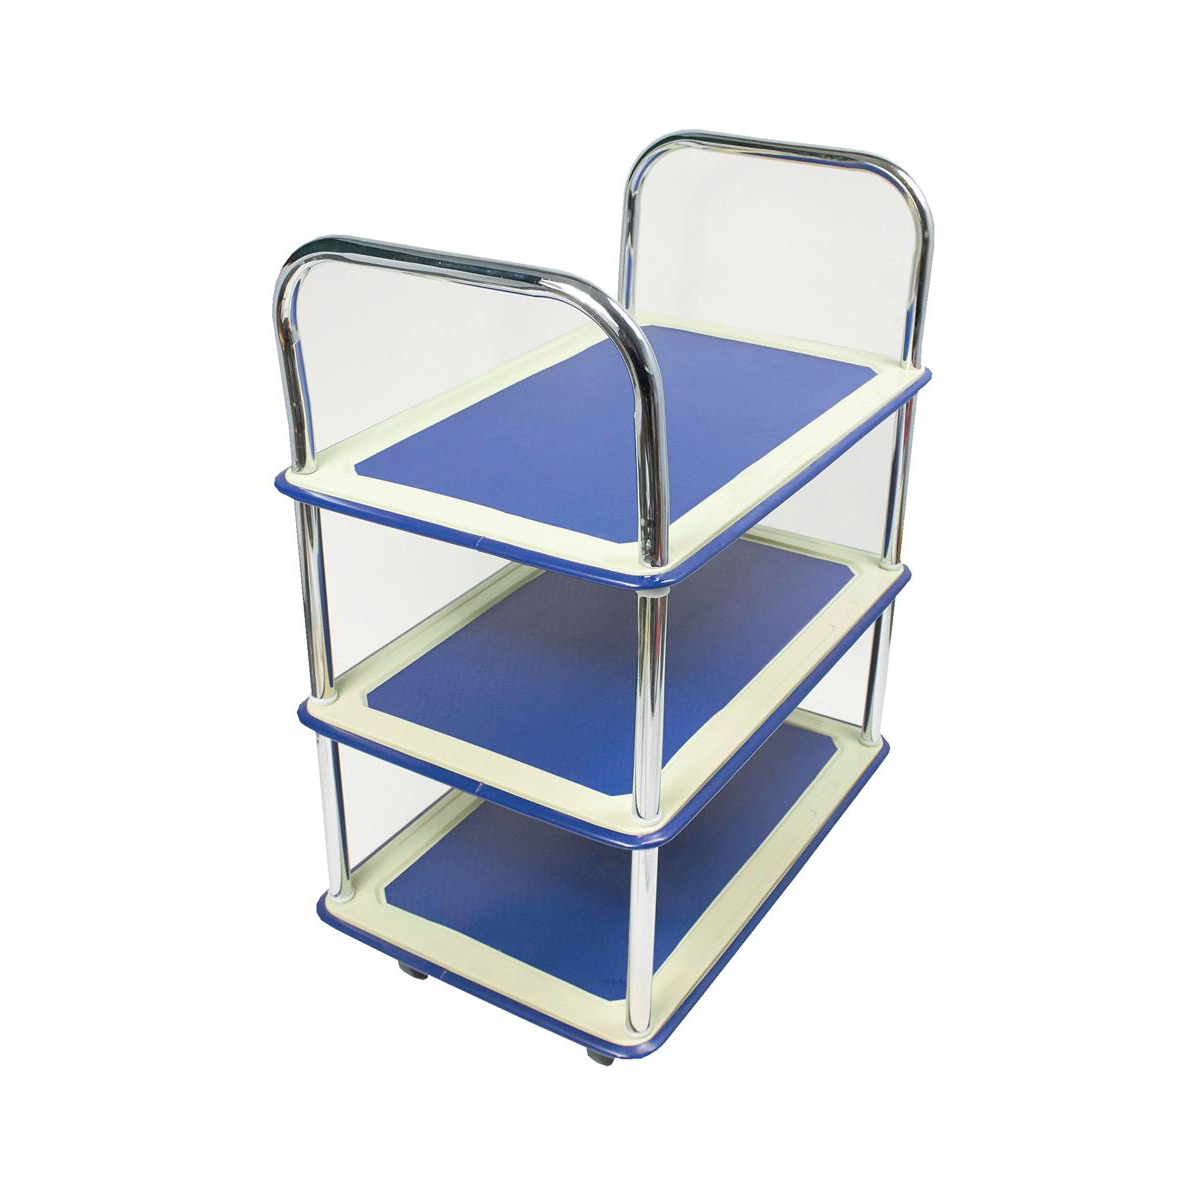 Trolleys 5 Star Facilities Trolley Lightweight Steel Frame 3 Shelf Capacity 120kg Chrome W470xD725xH950mm